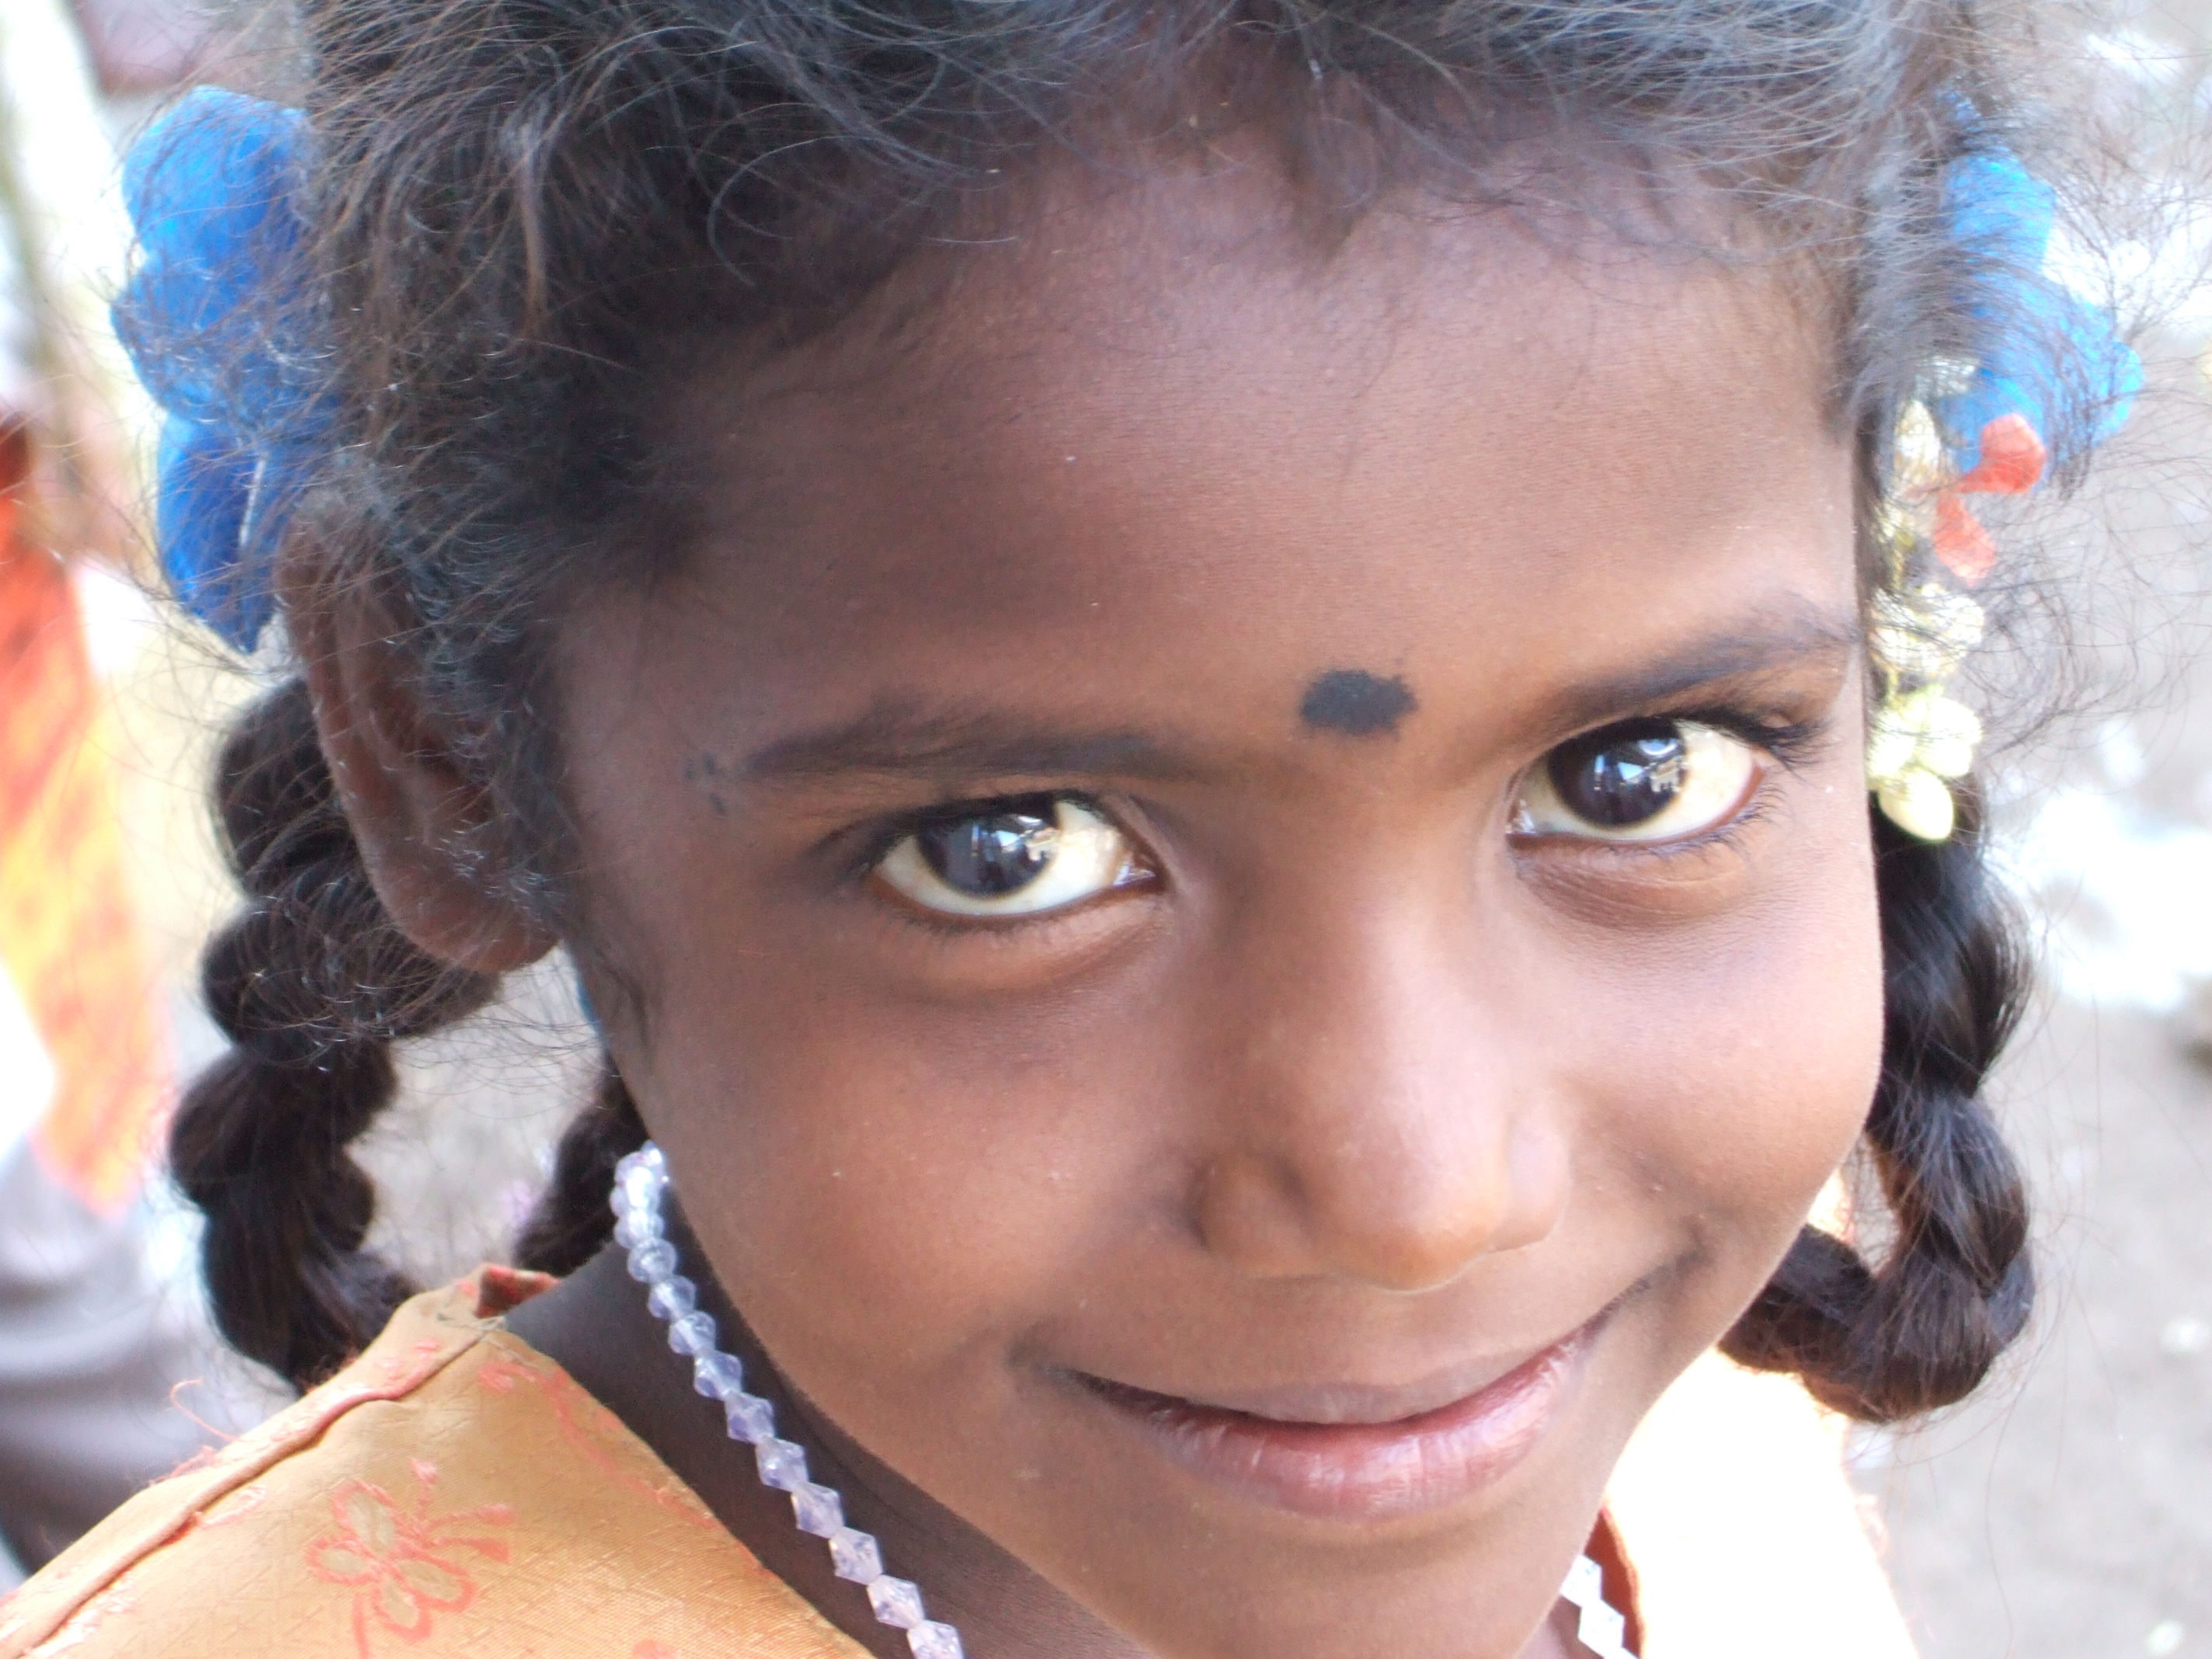 To download full resolution india young girl photo free of charge